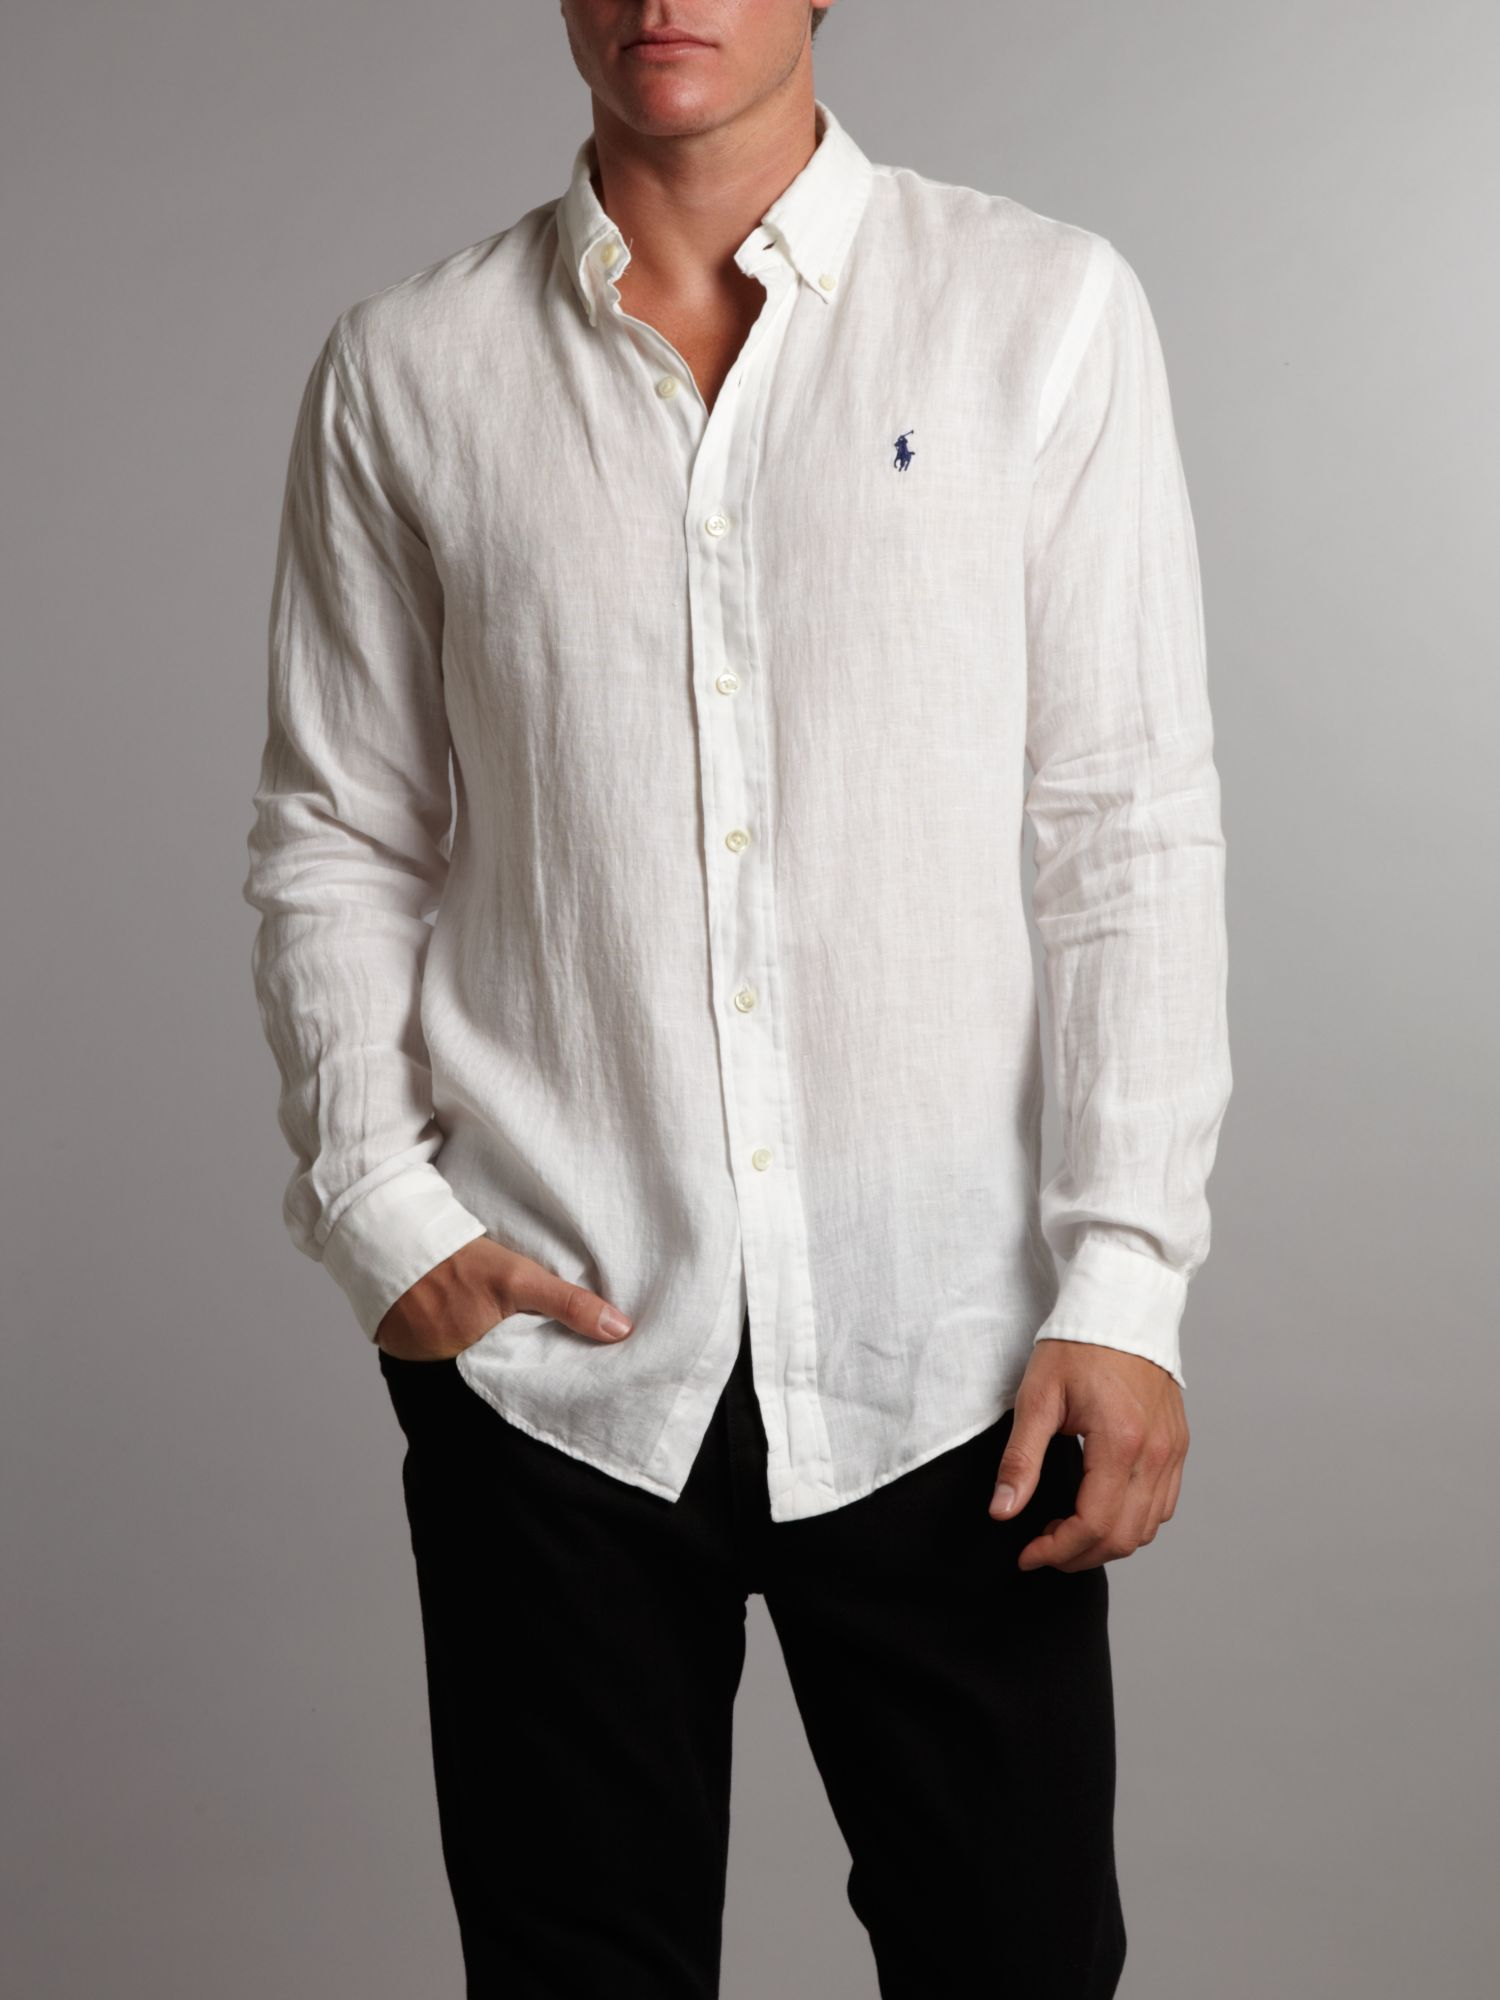 polo ralph lauren linen button down shirt in white for men